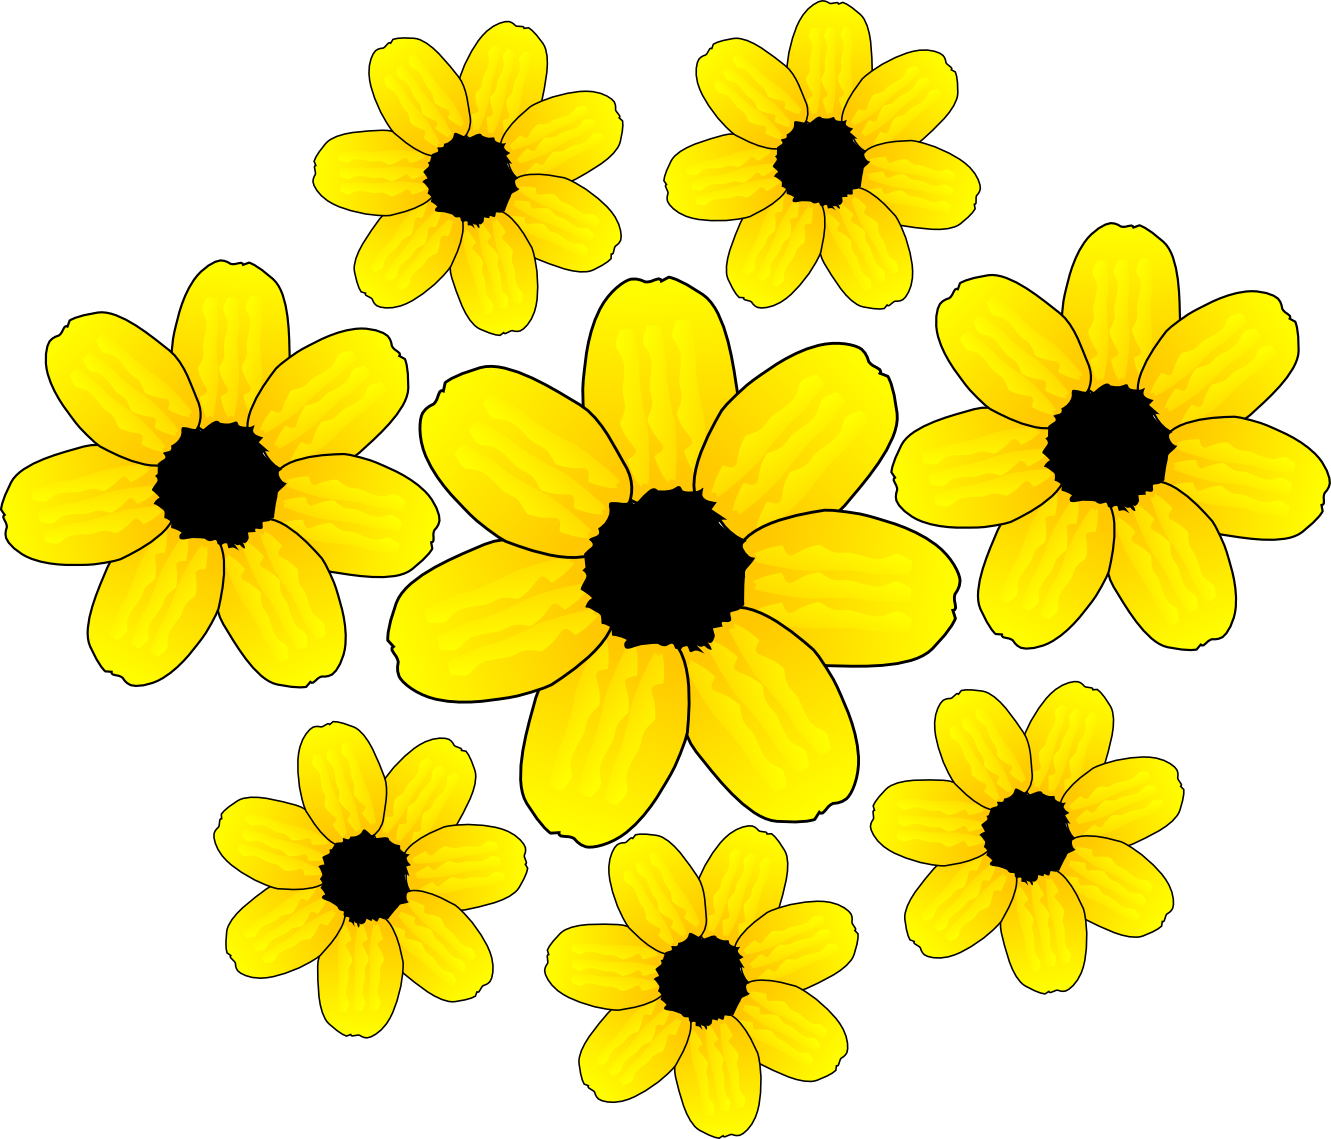 Free Yellow Flower Clipart, Download Free Clip Art, Free.